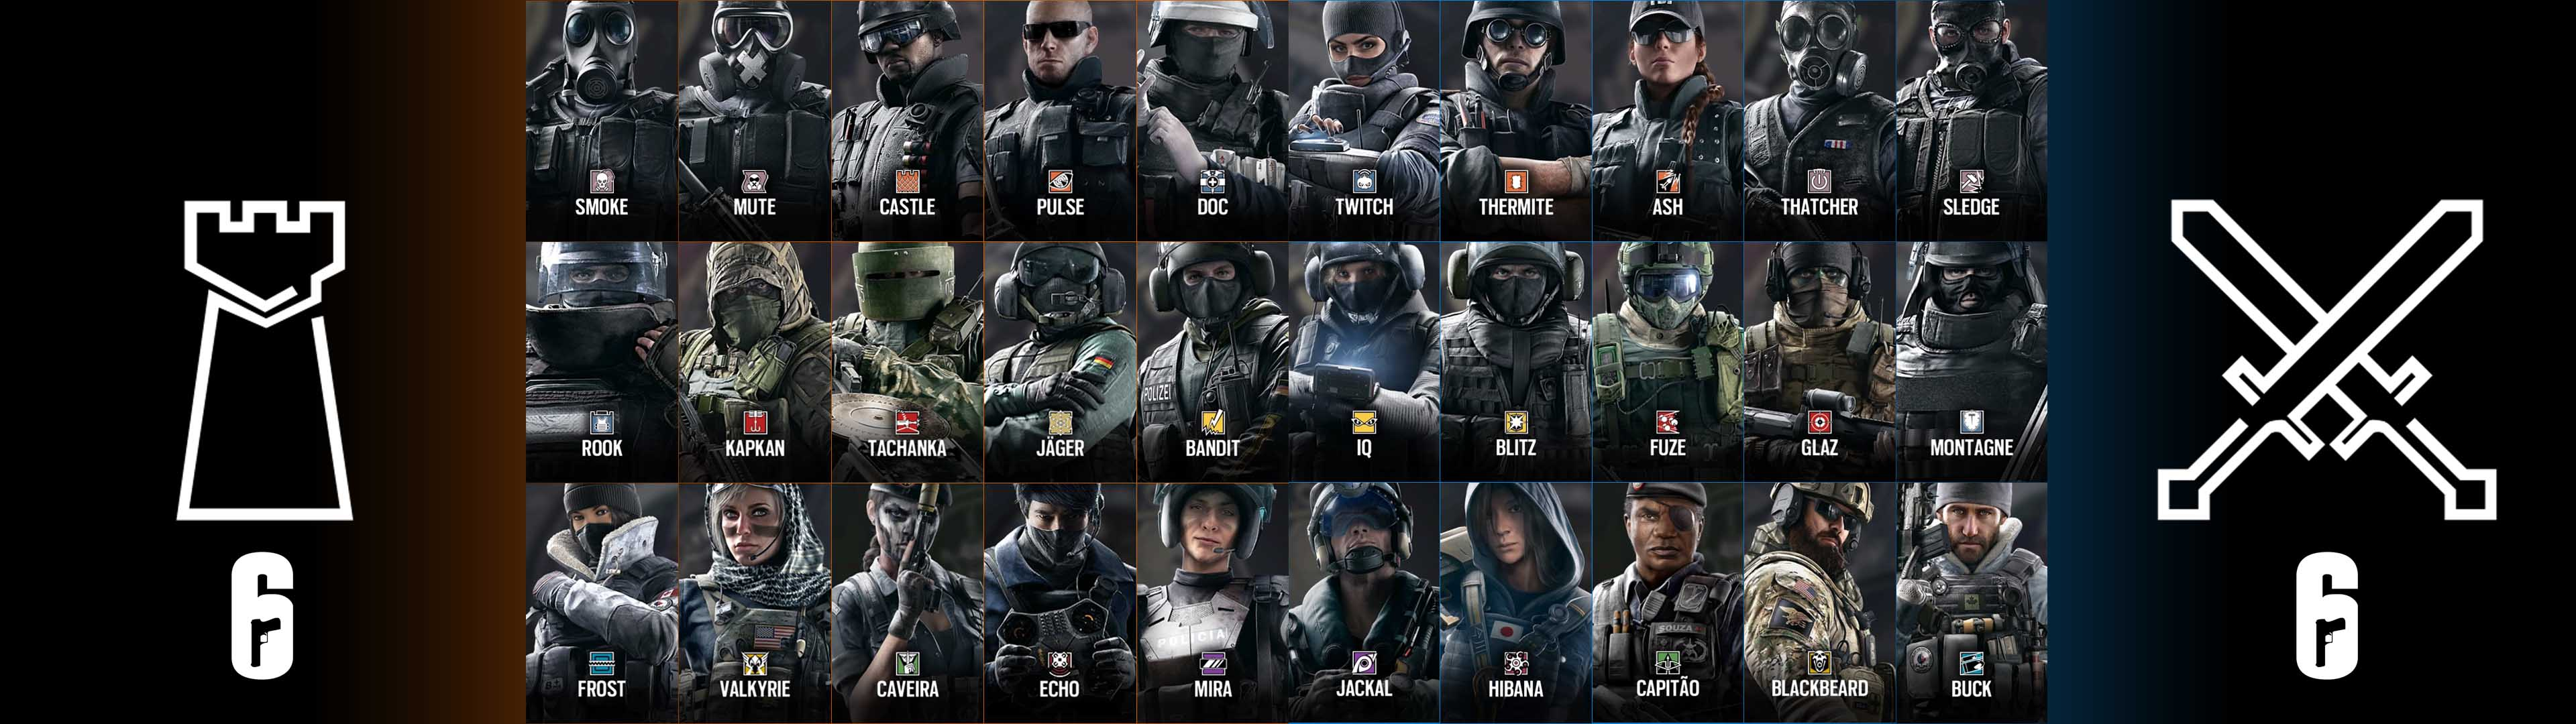 Rainbow Six Siege Operators Wallpaper Posted By Michelle Anderson